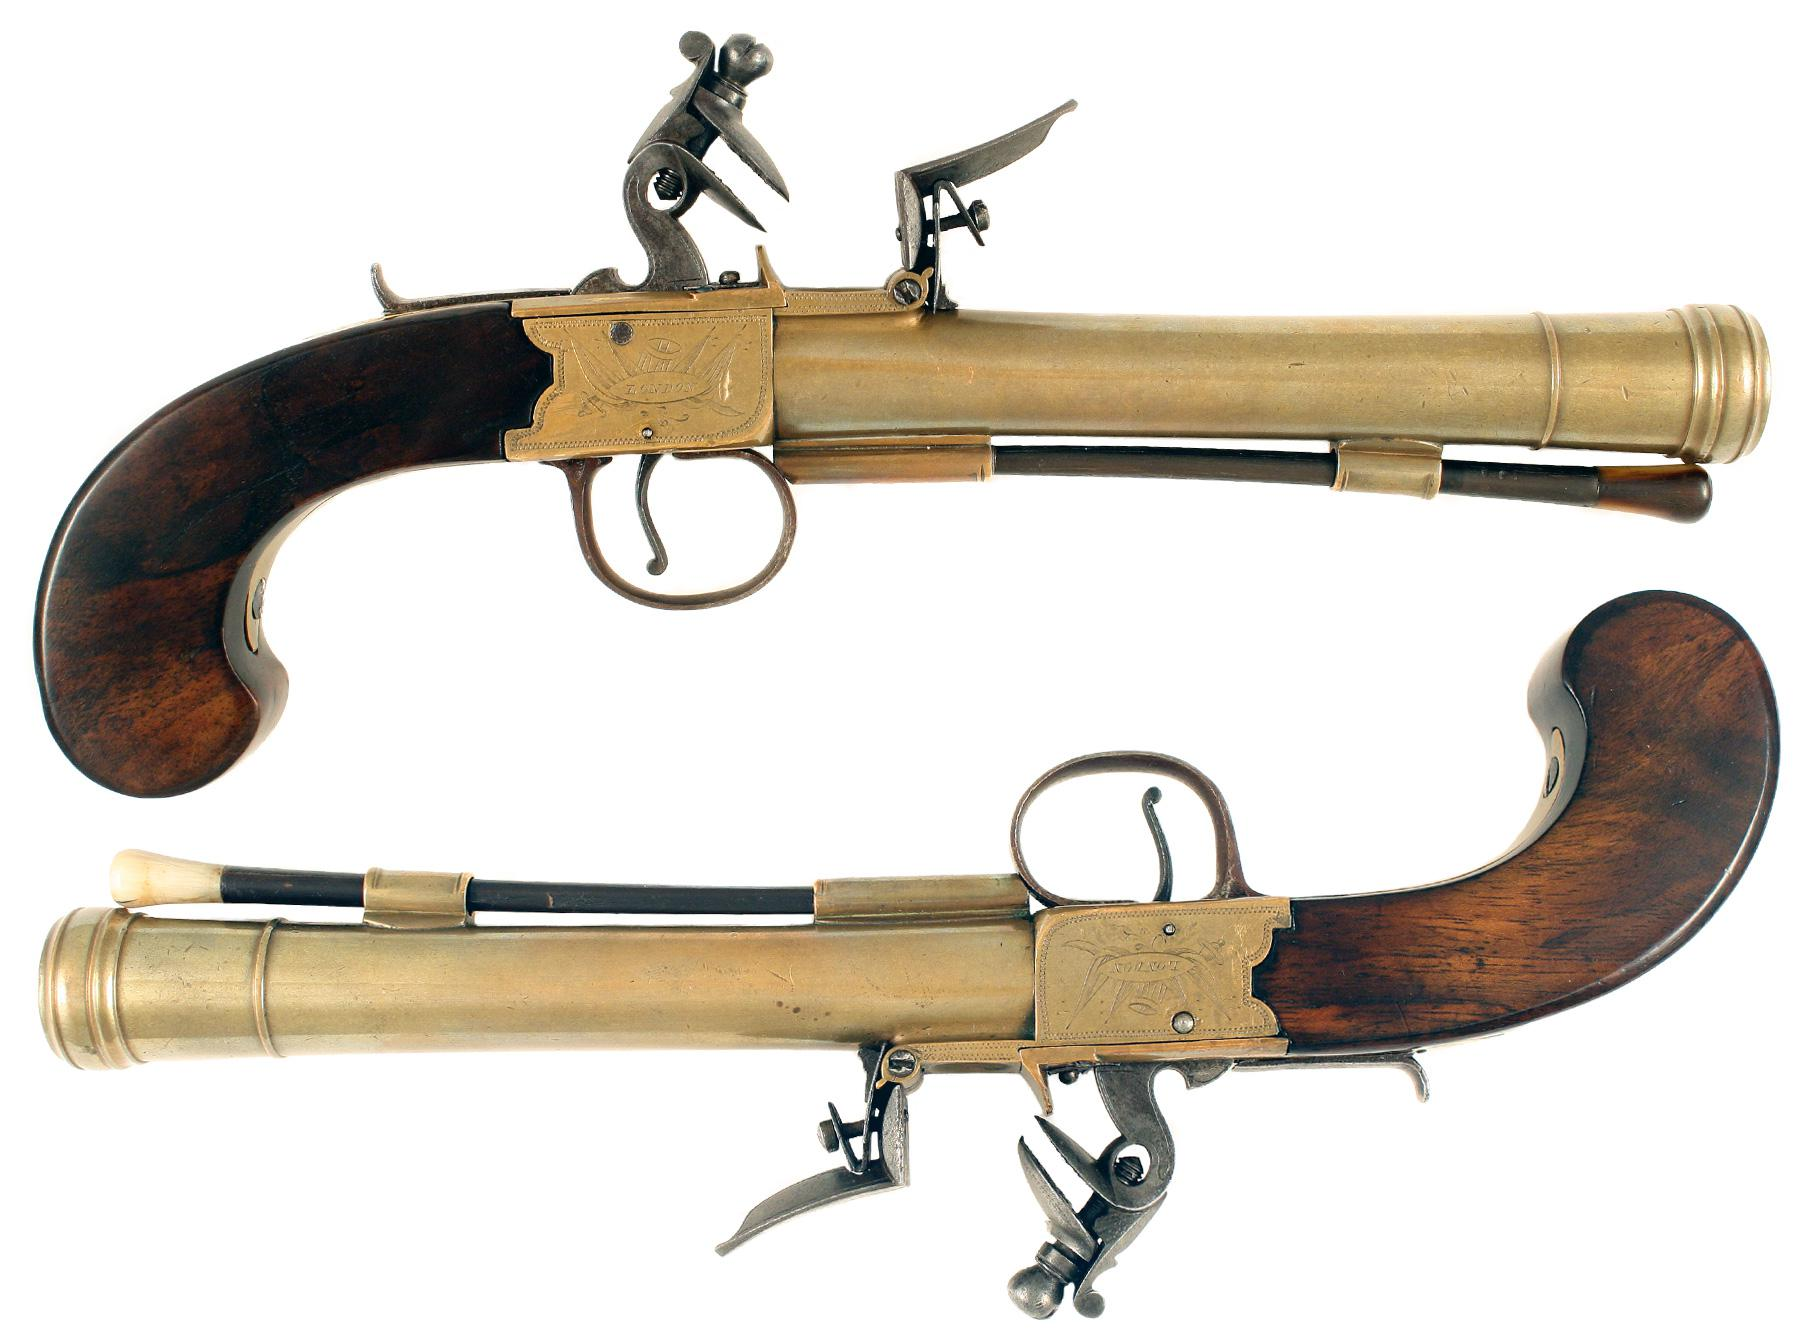 A Pair of Flintlock Blunderbuss Pistols